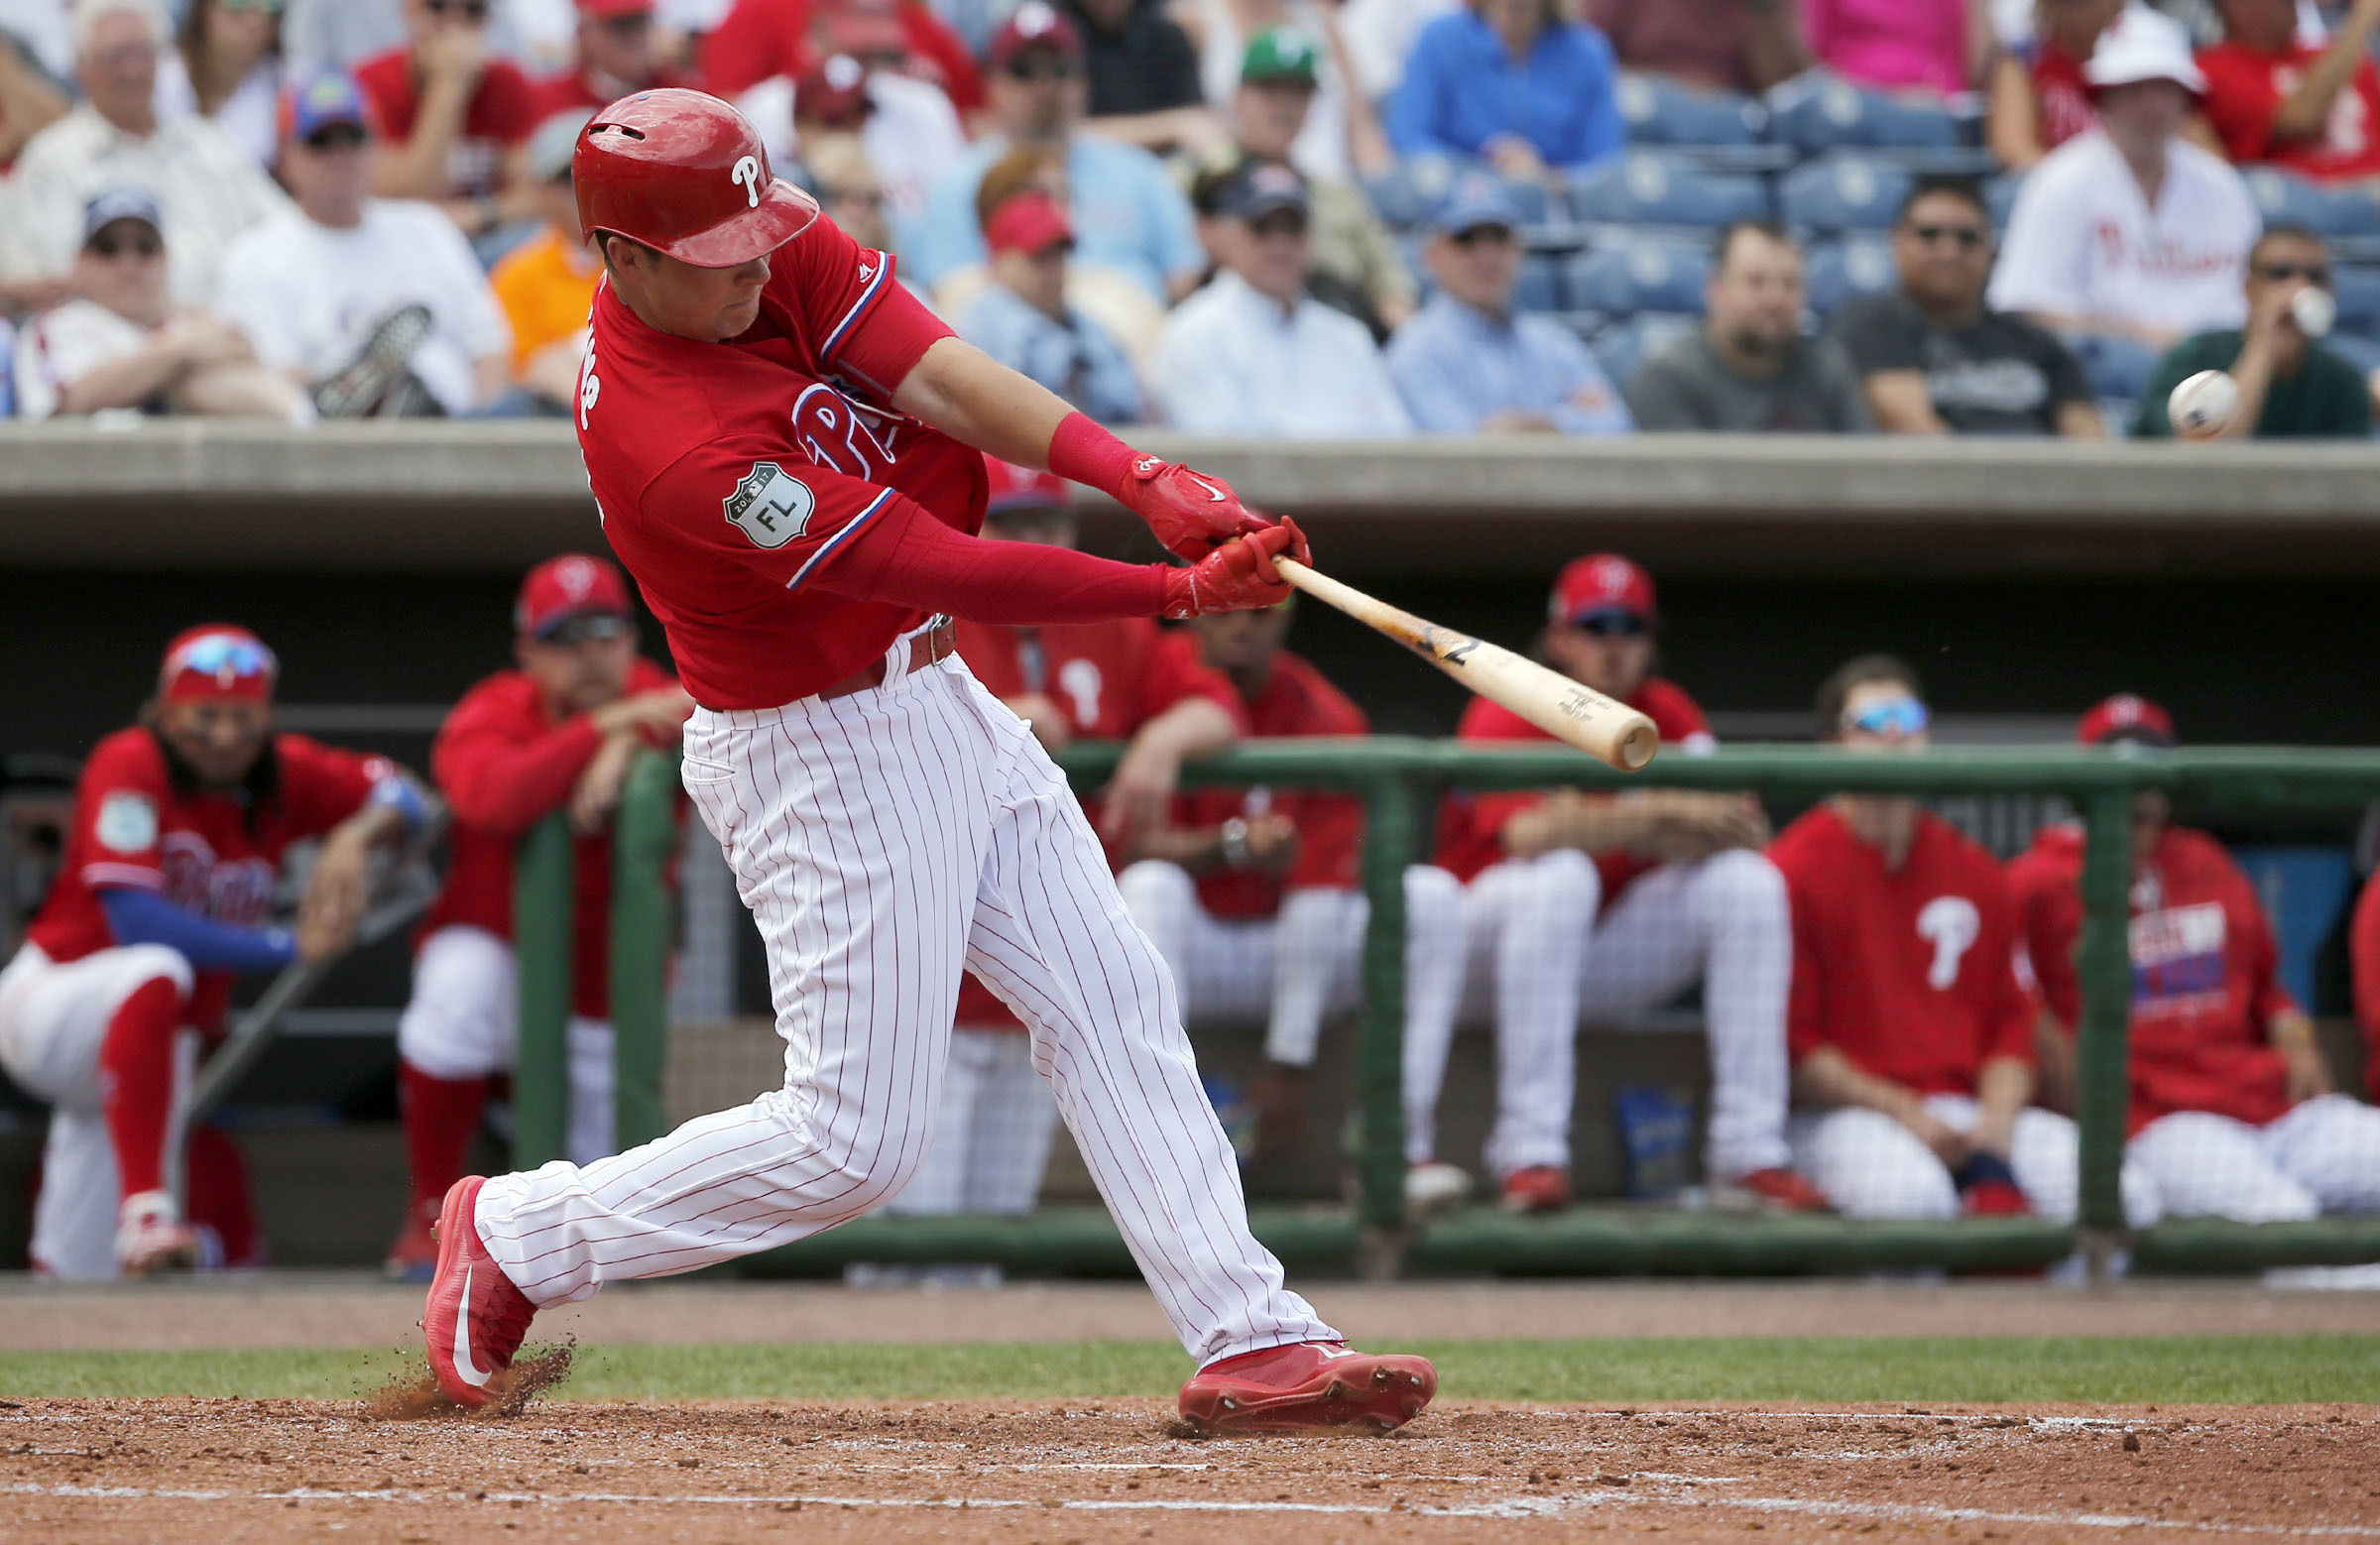 Phillies´ Rhys Hoskins hits a fourth-inning two-run home run against the Detroit Tigers during a spring training game on Sunday, March 5, 2017 at Spectrum Field in Clearwater, FL. YONG KIM / Staff Photographer